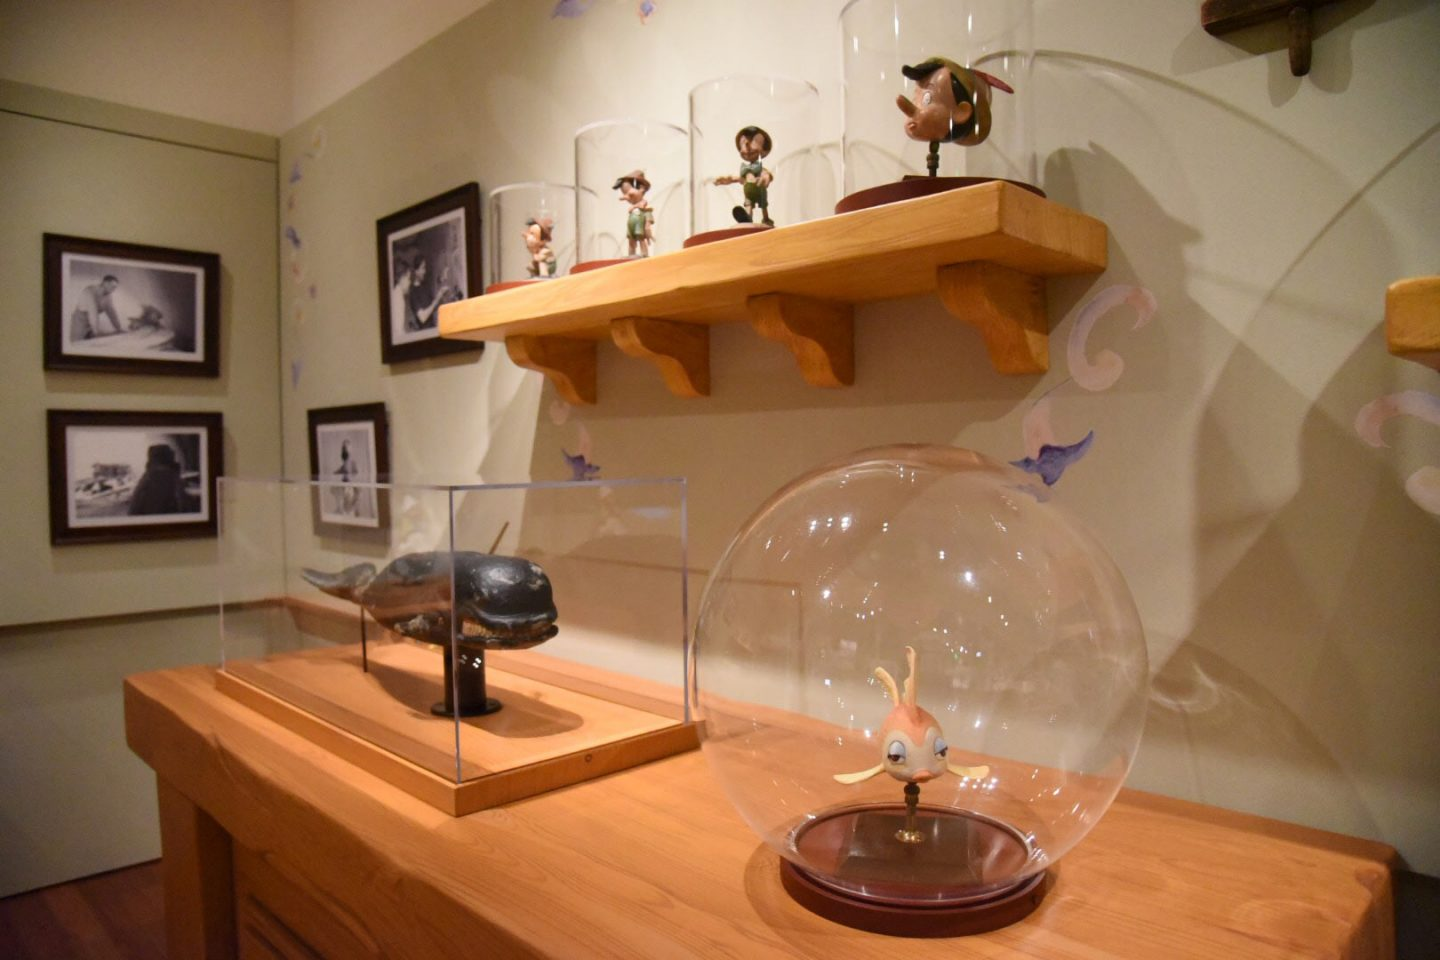 The Gepetto's Workshop section of the exhibit displays original maquettes created during the production of the film.